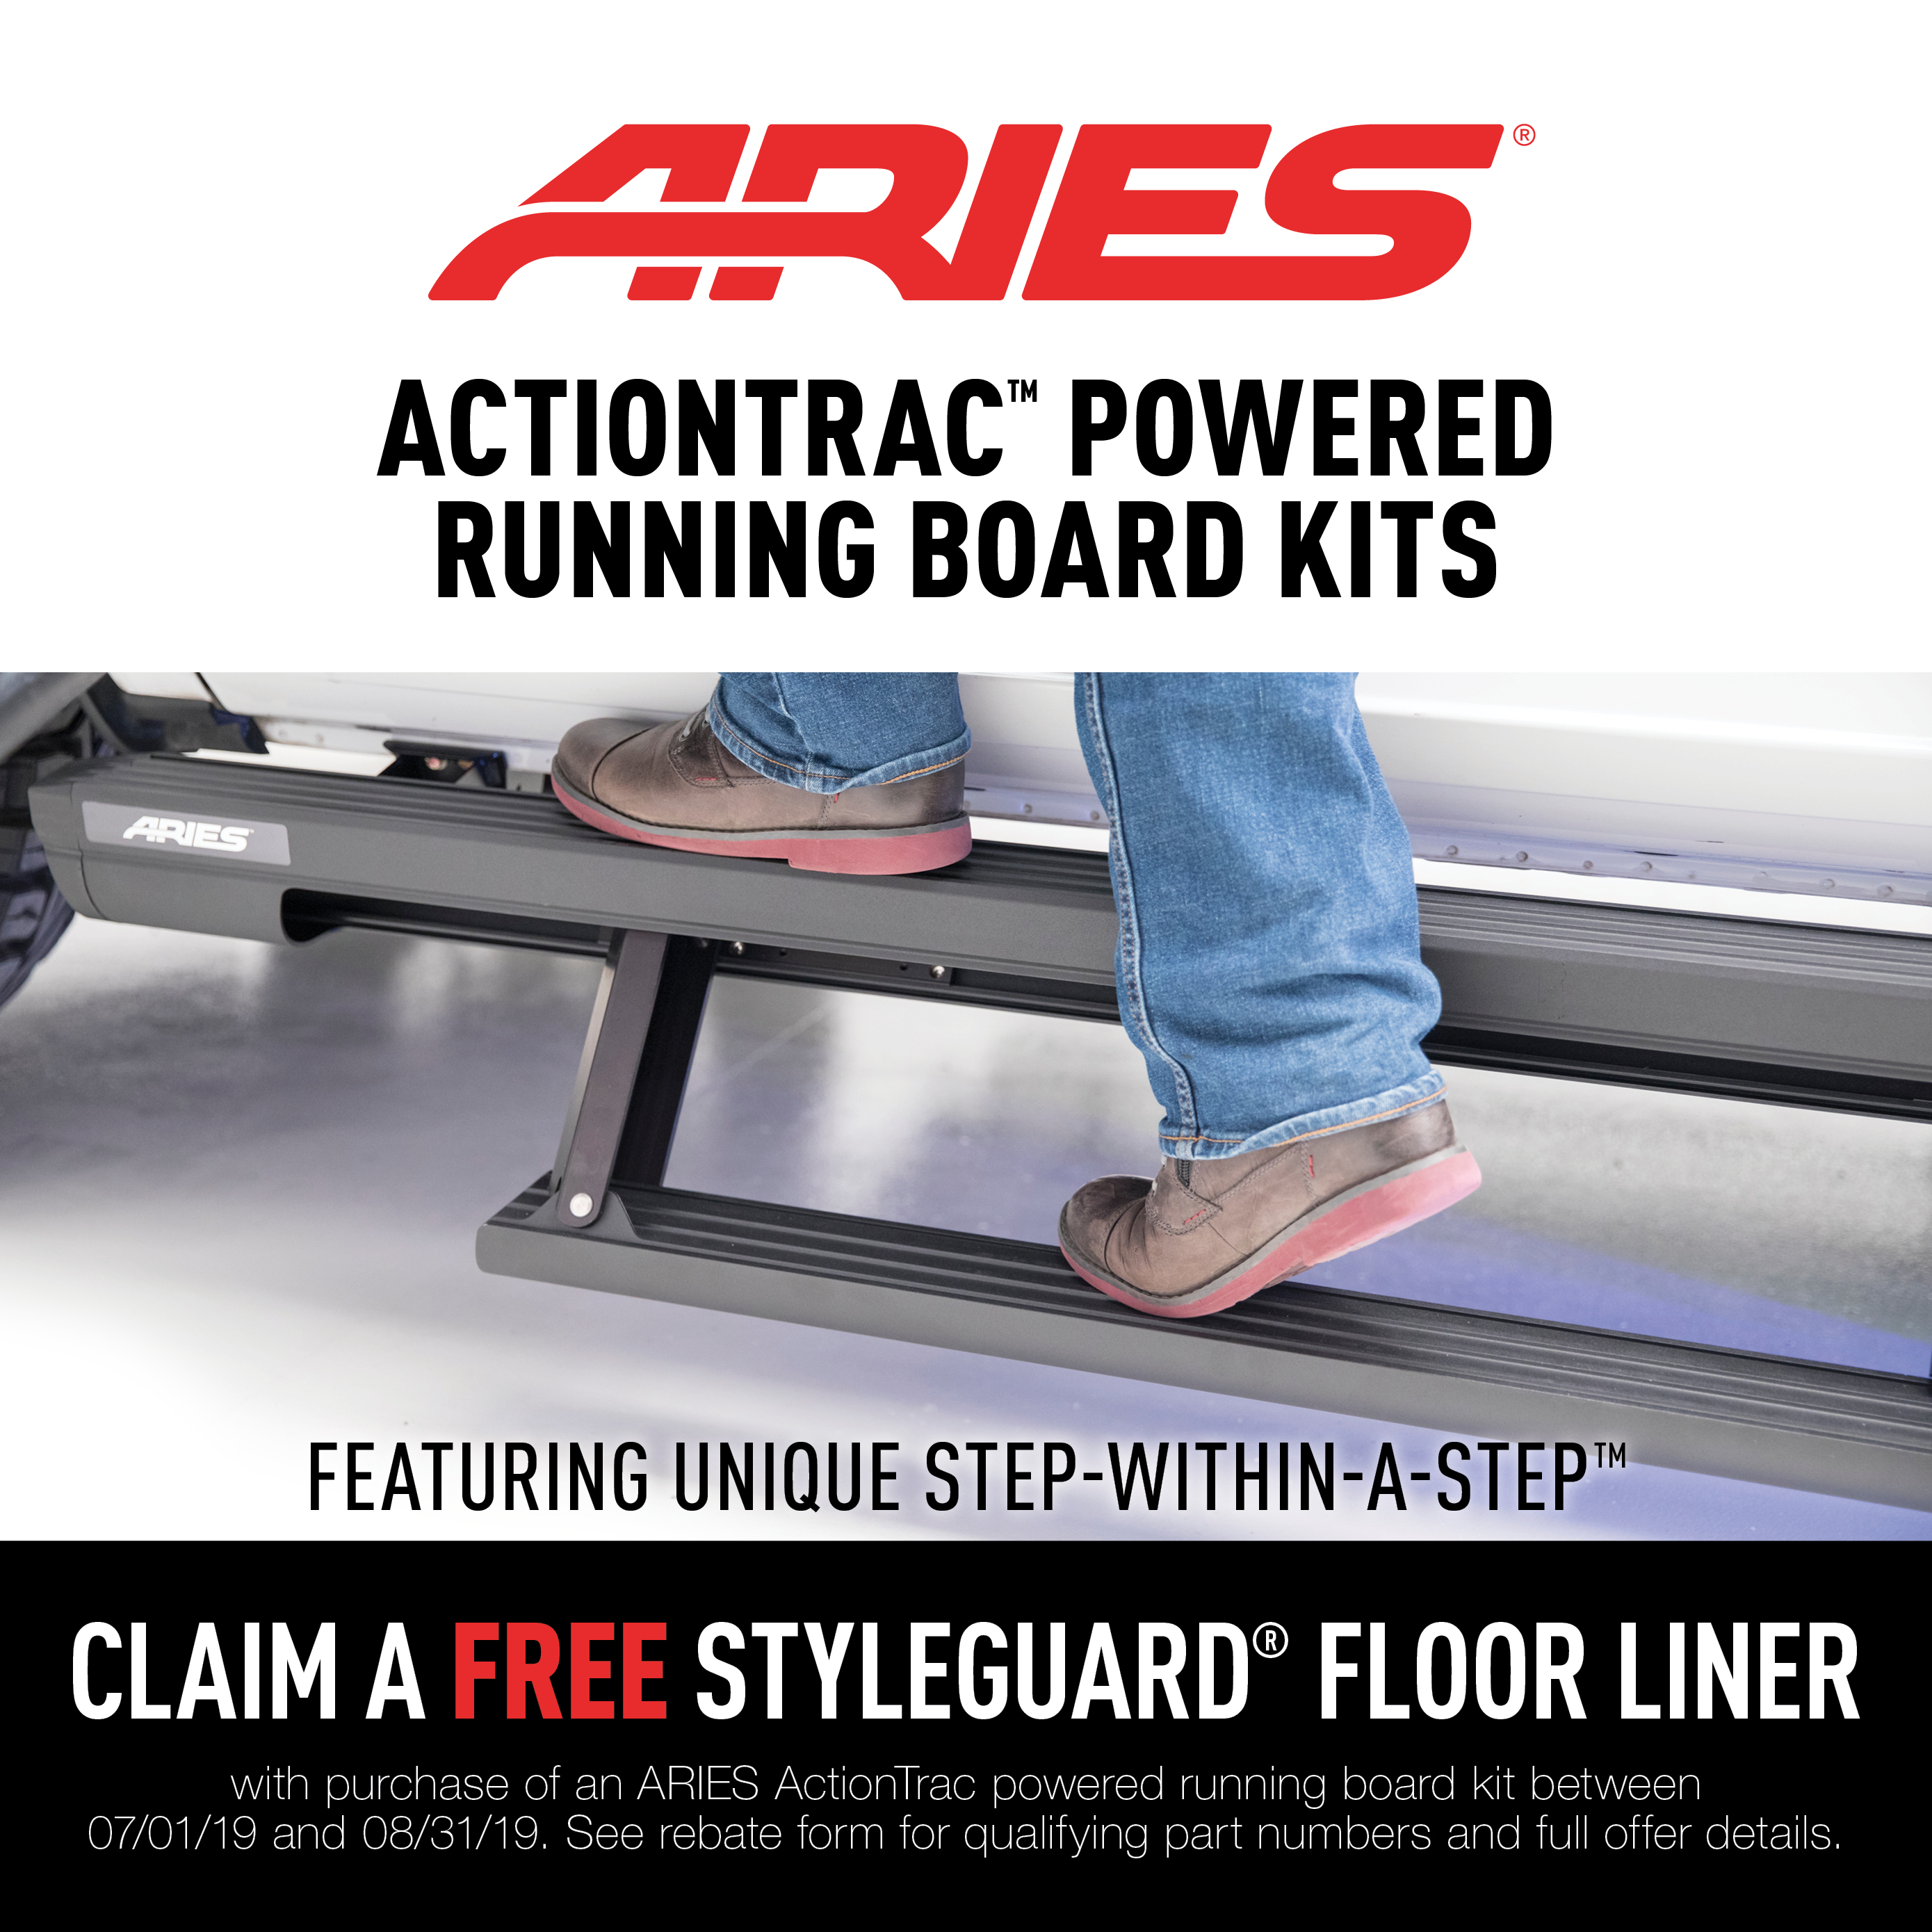 ActionTrac™ Powered Running Boards Promotion 2019